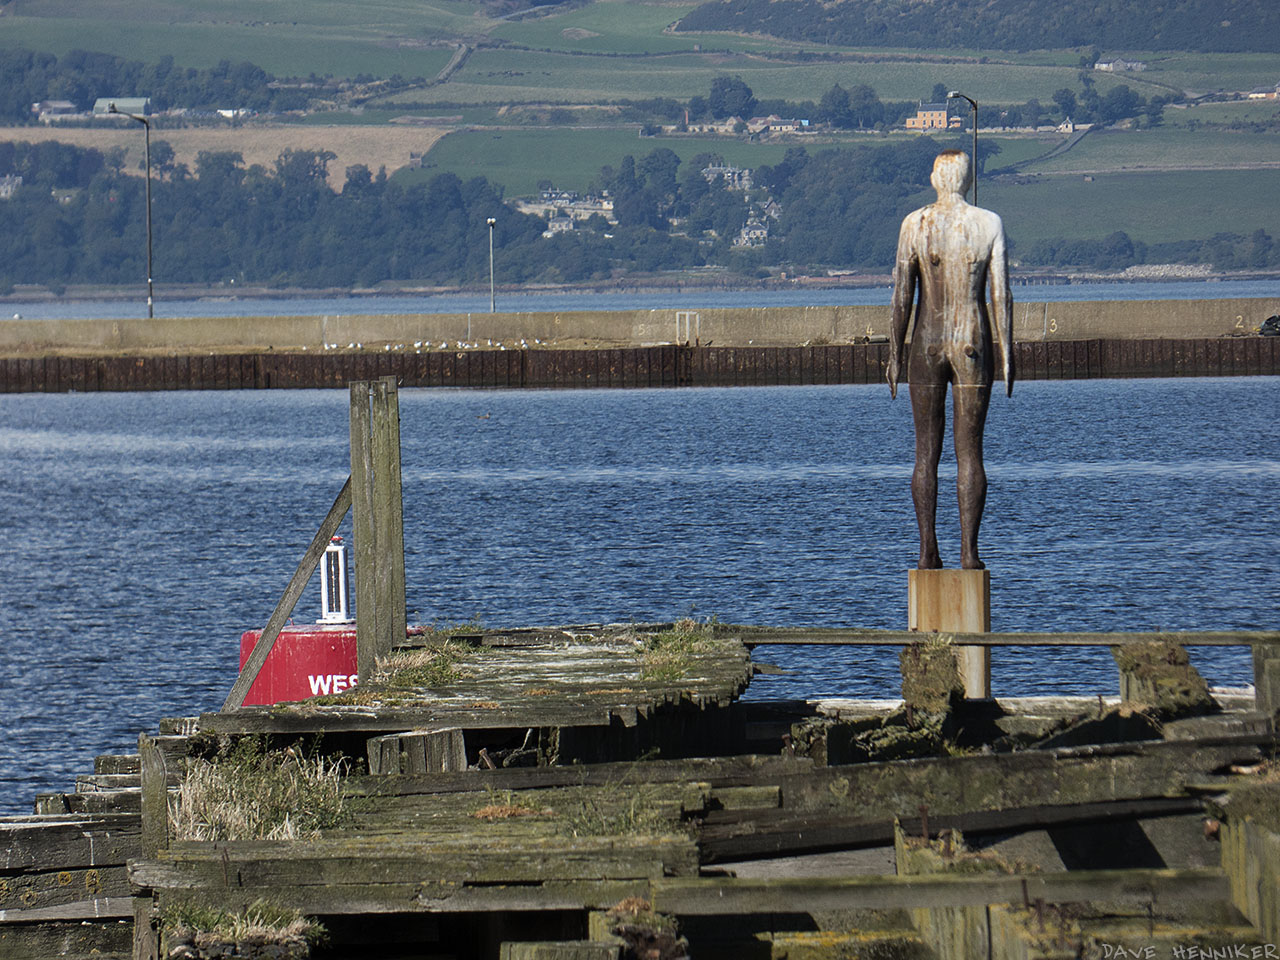 This Gormley statue is outlasting others in the Water of Leith. Use of a long lens makes Fife look much closer than it actually is.